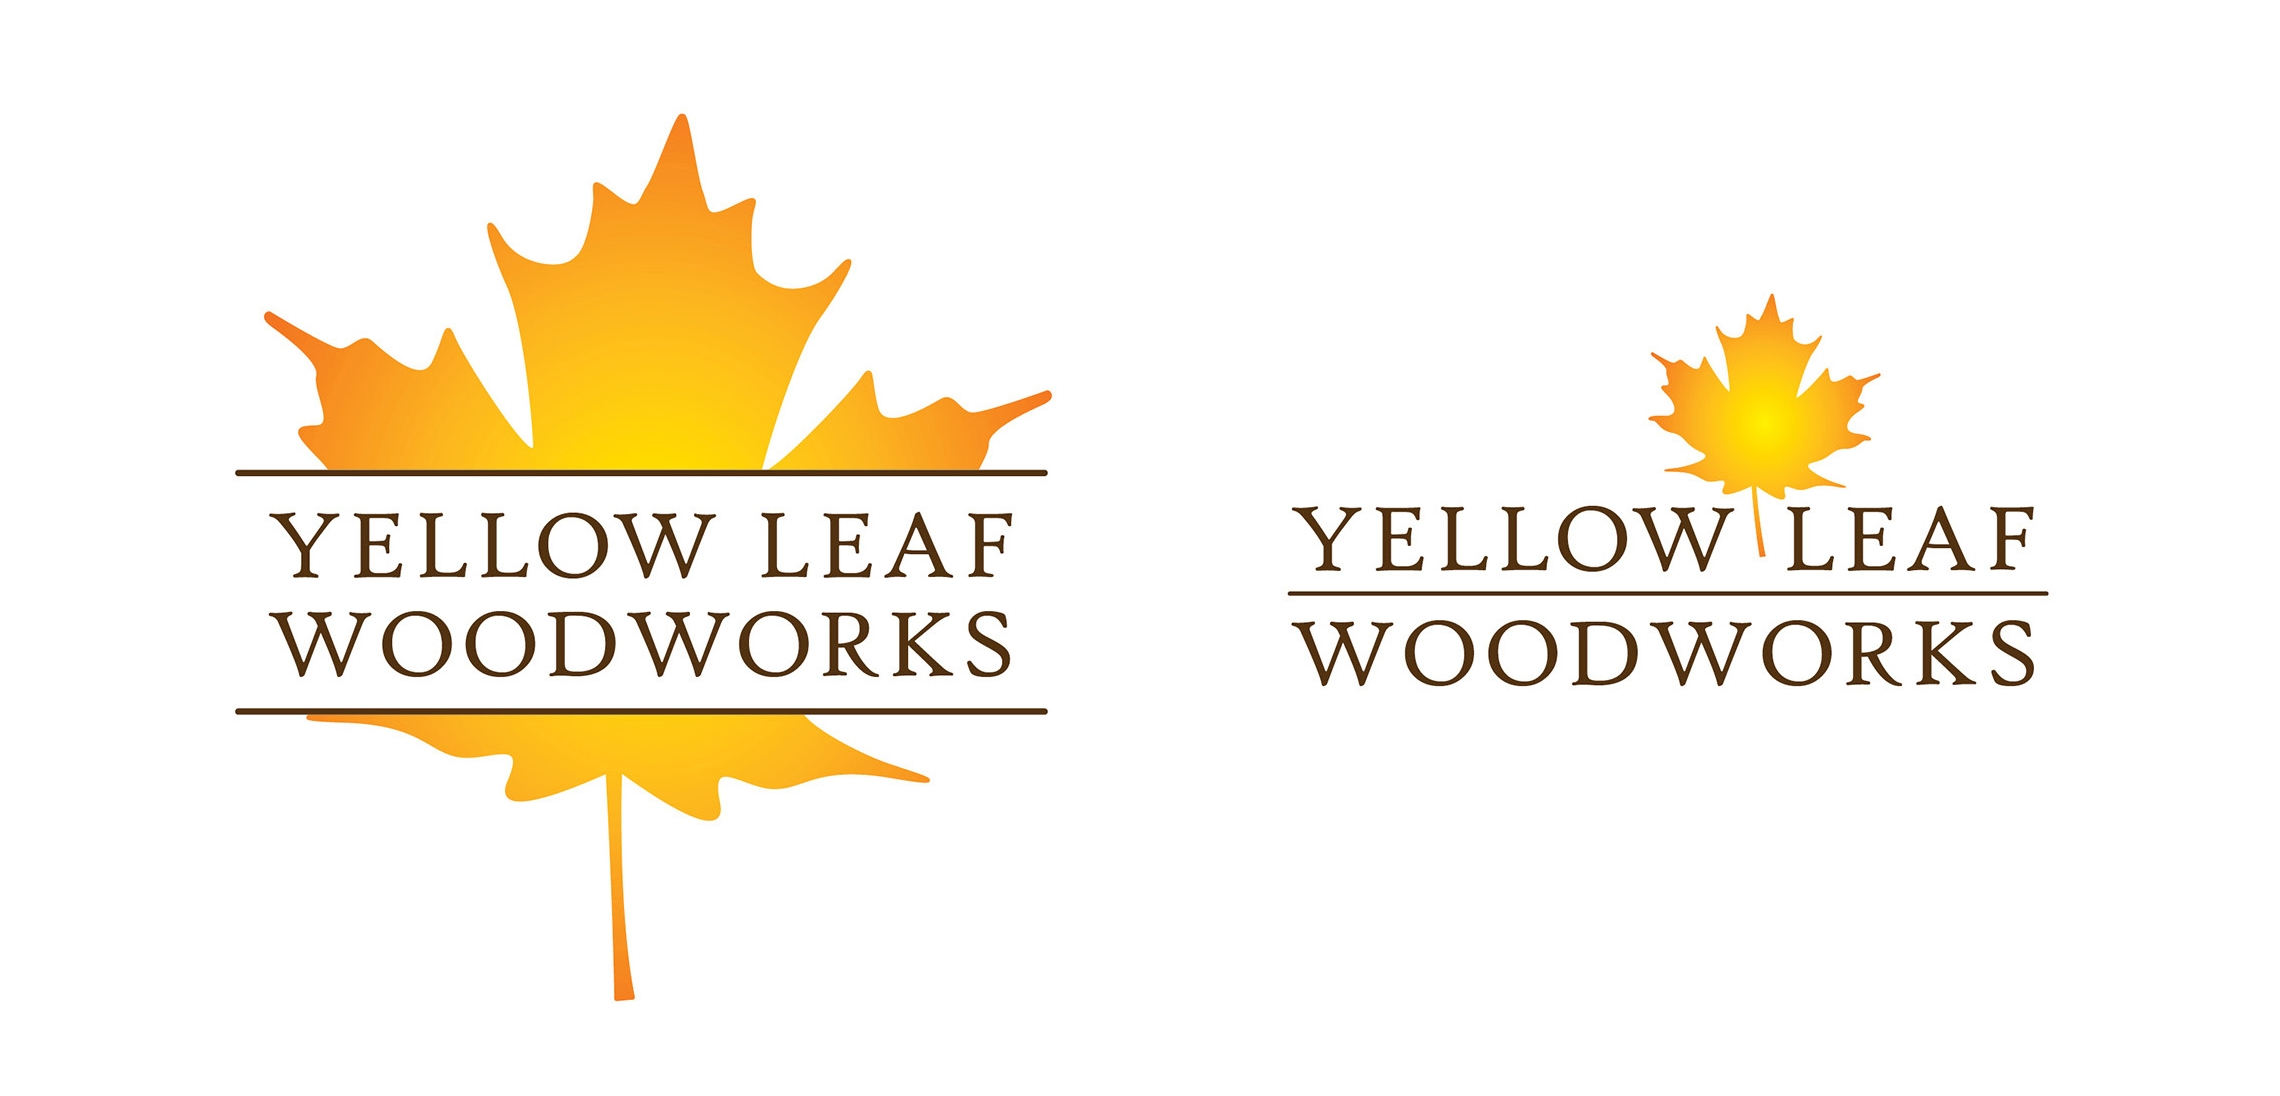 Yellow Leaf Woodworks.jpg